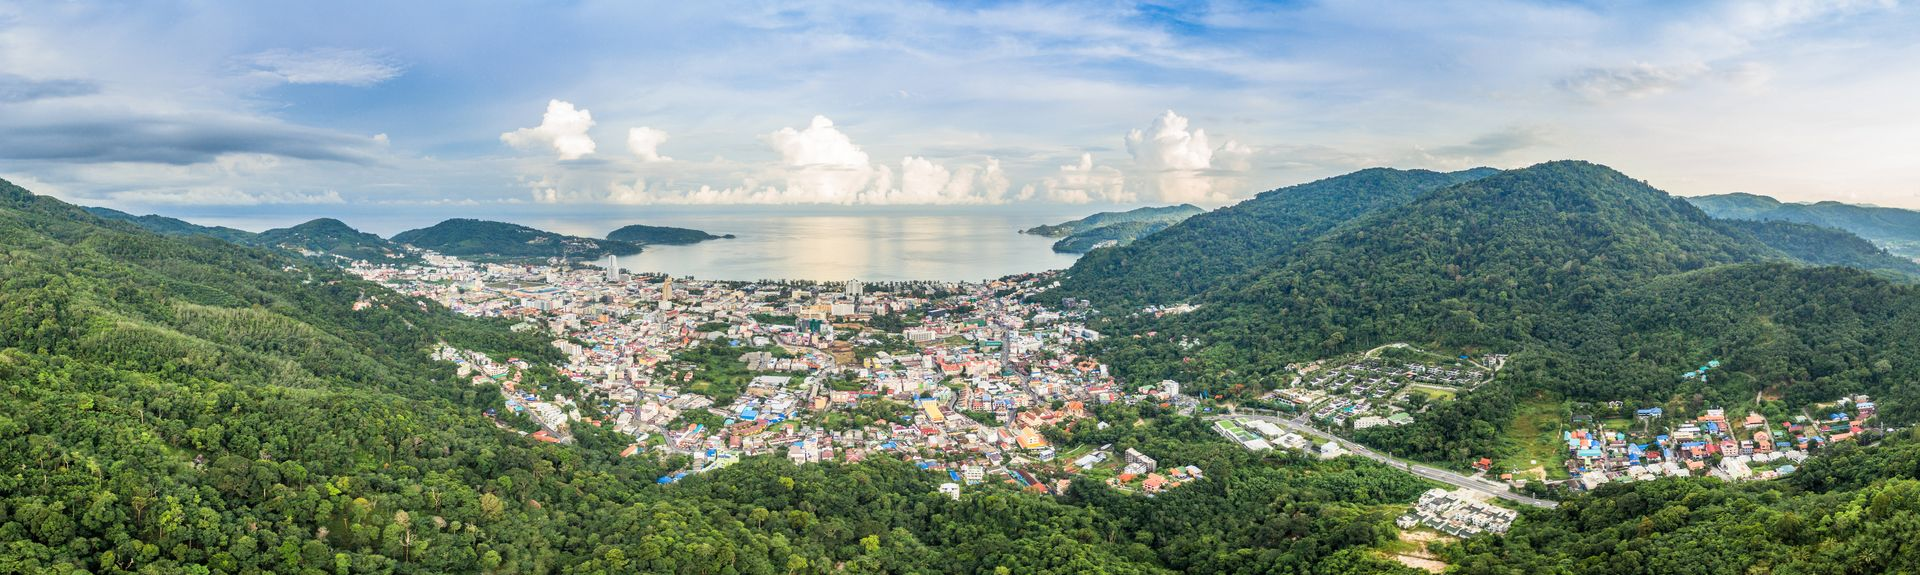 Patong, Kathu District, Phuket, Thailand